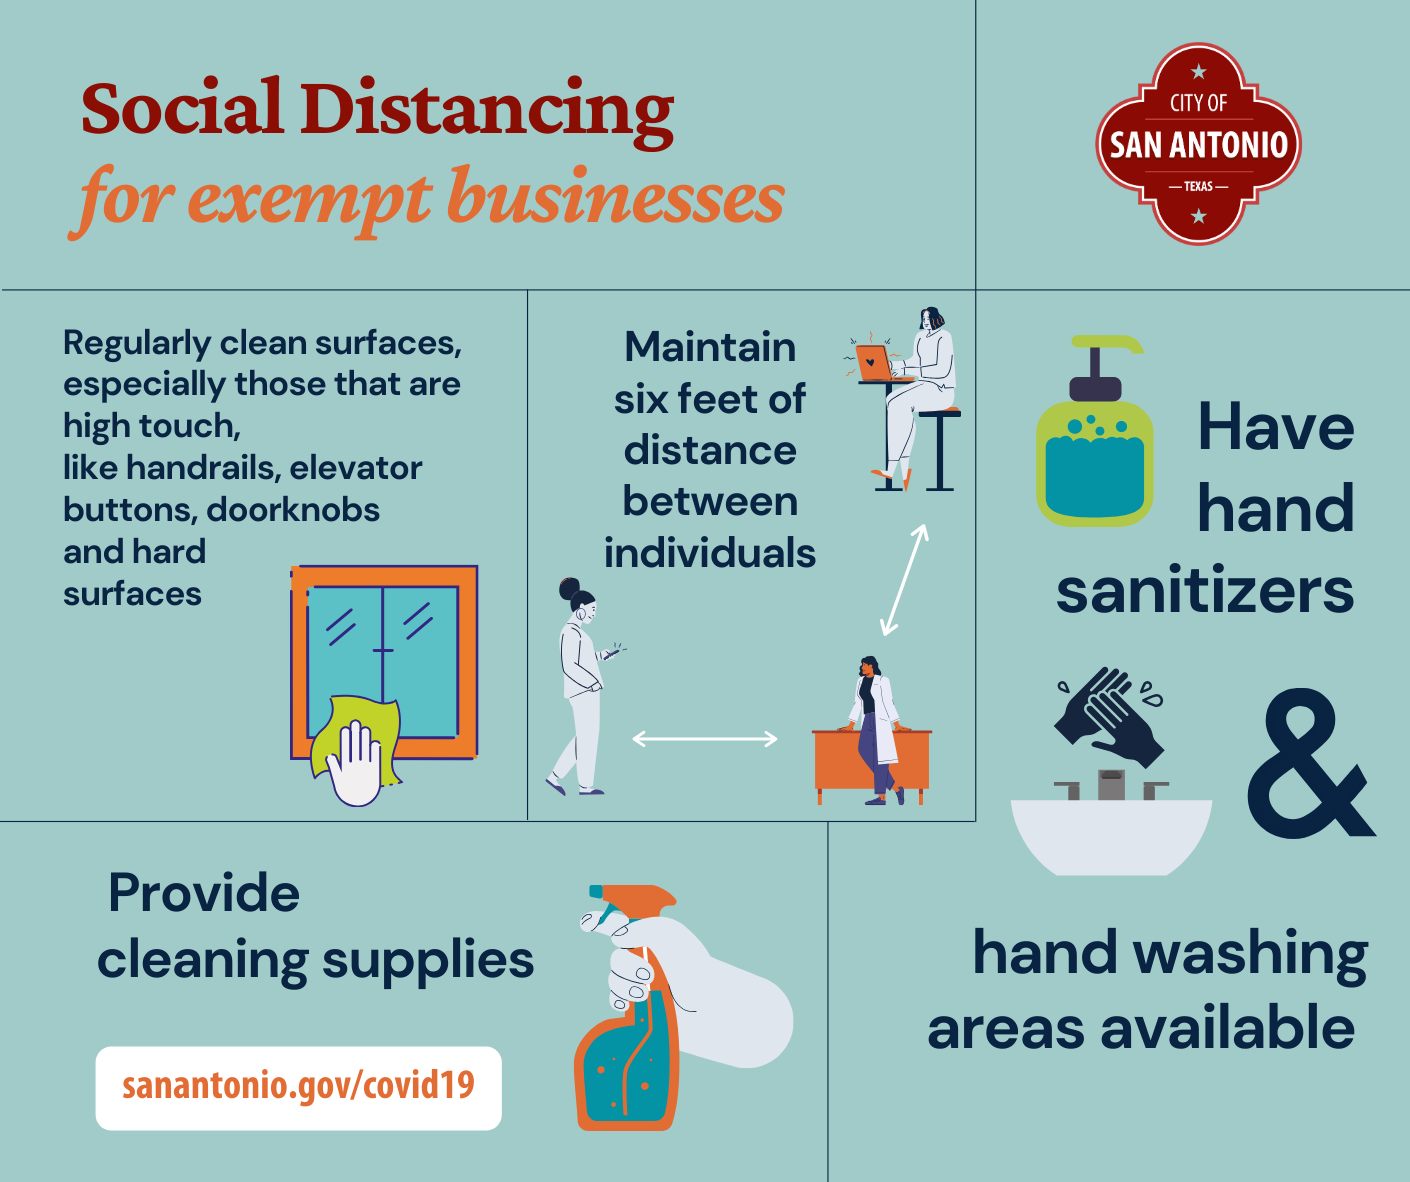 Social distancing for exempt businesses